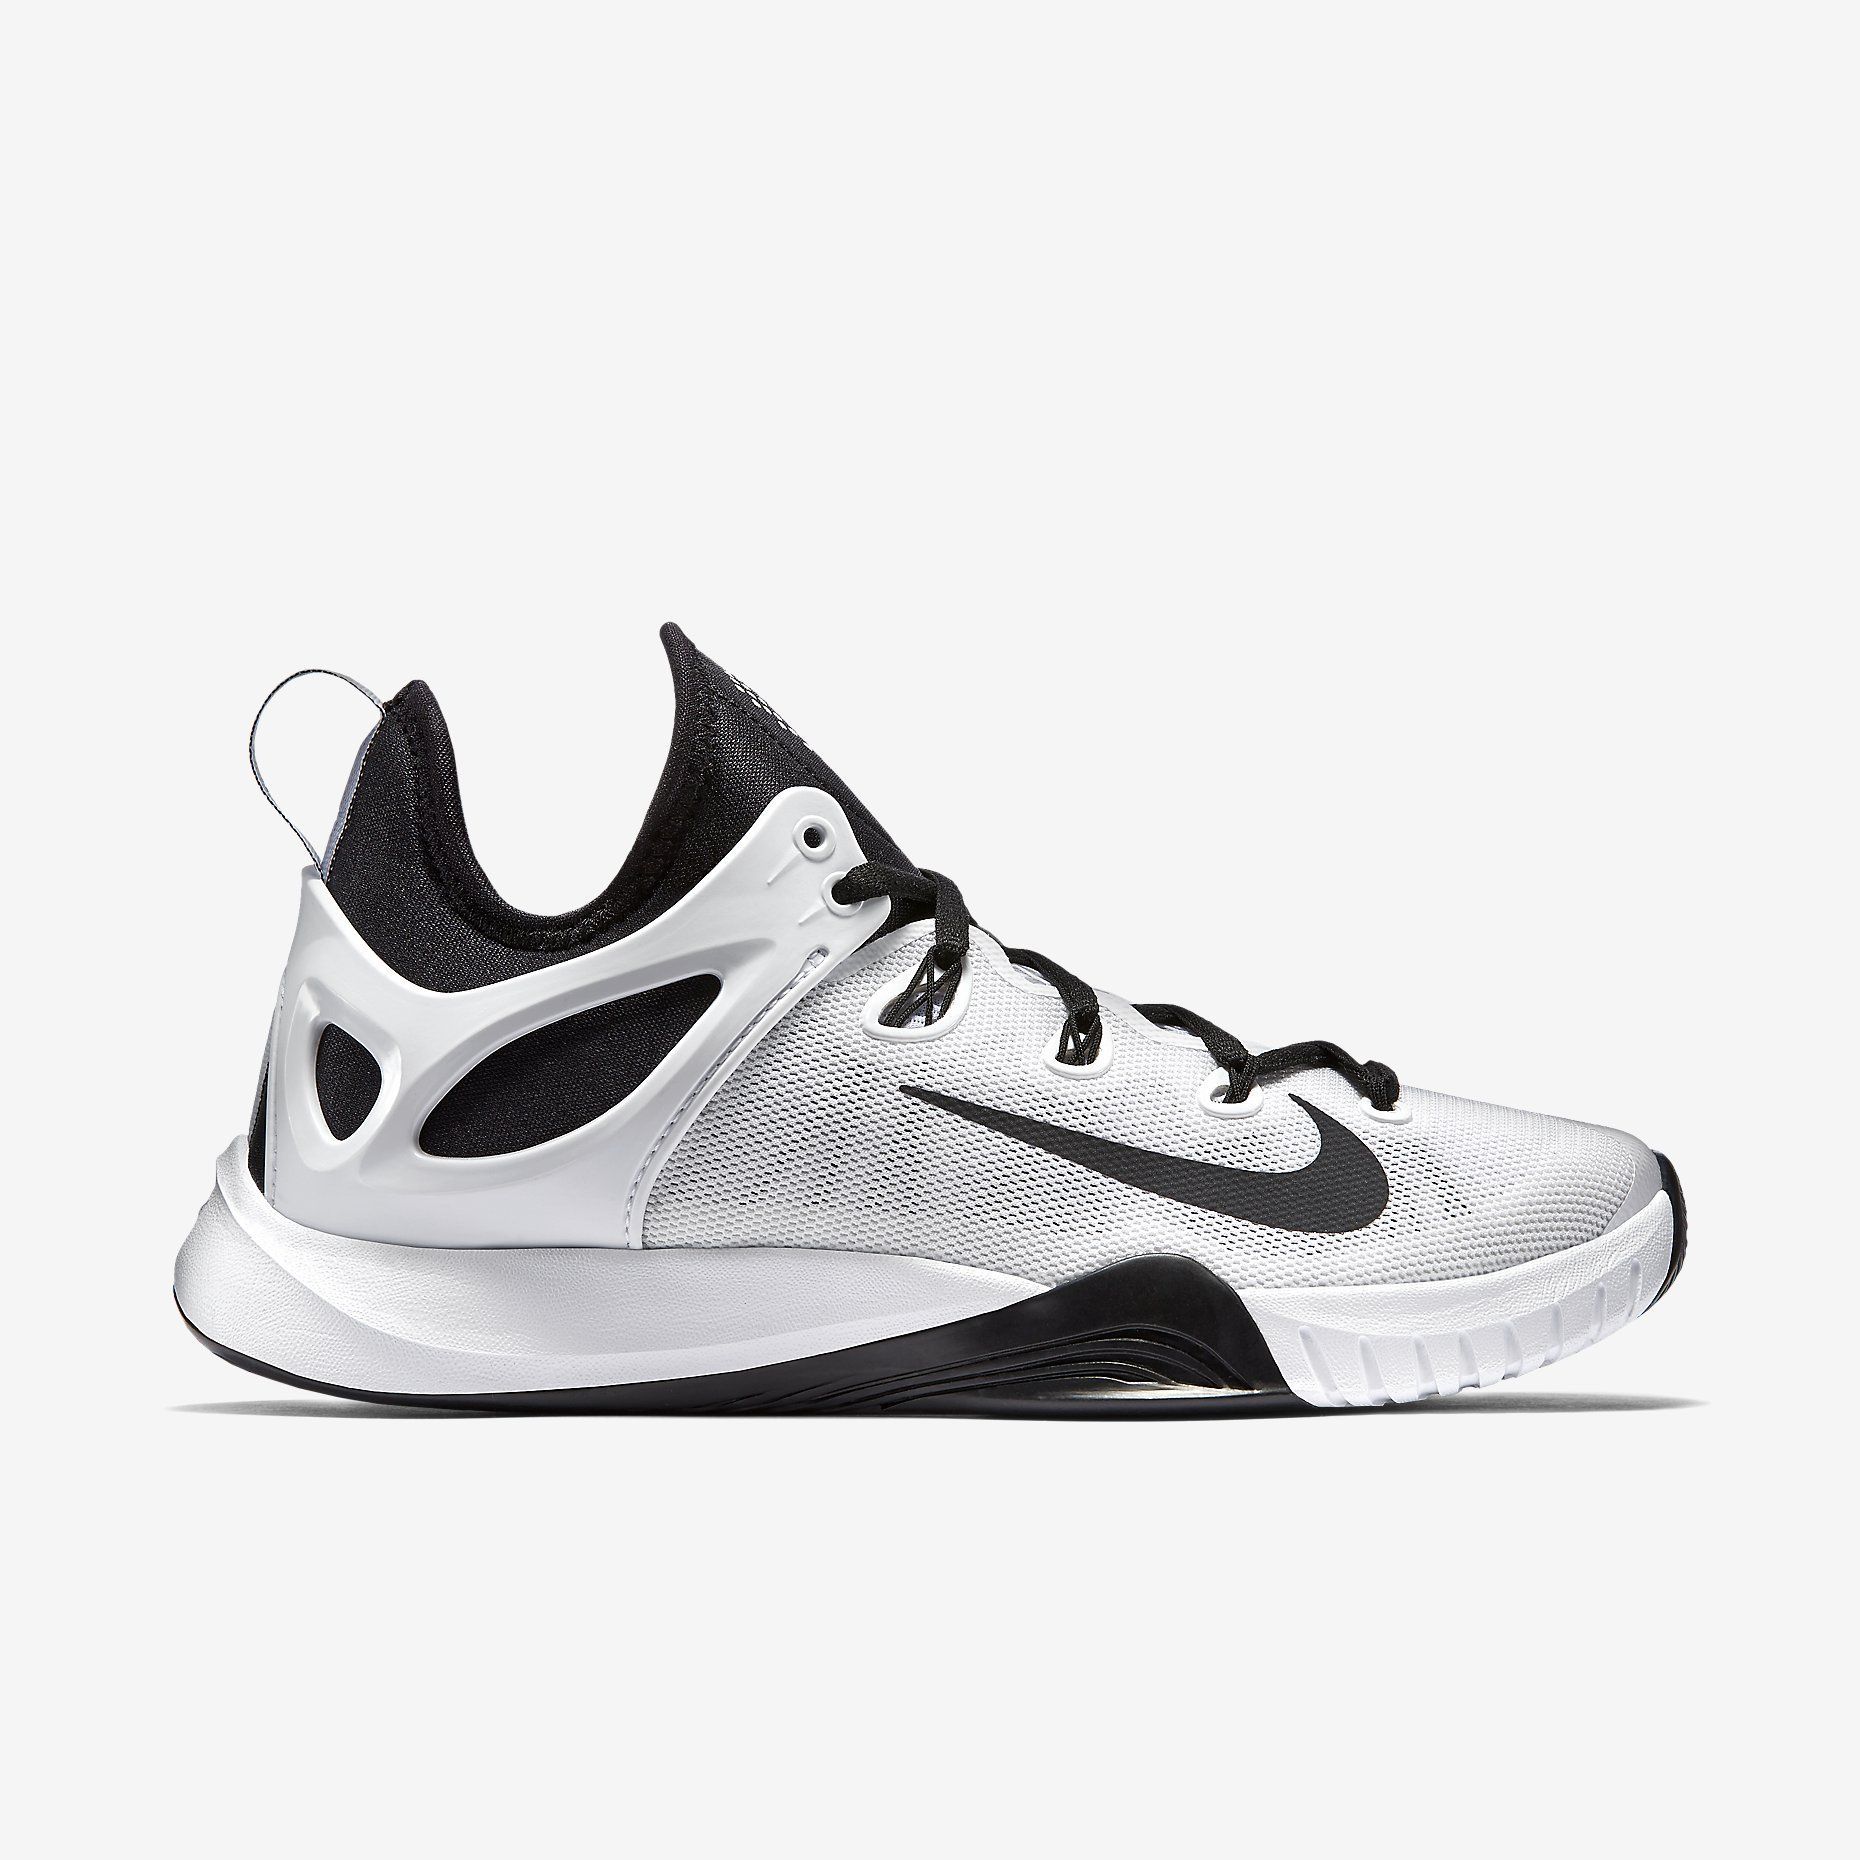 on sale f7ca4 411e1 Nike Zoom HyperRev 2015 Men s Basketball Shoe. Nike Store